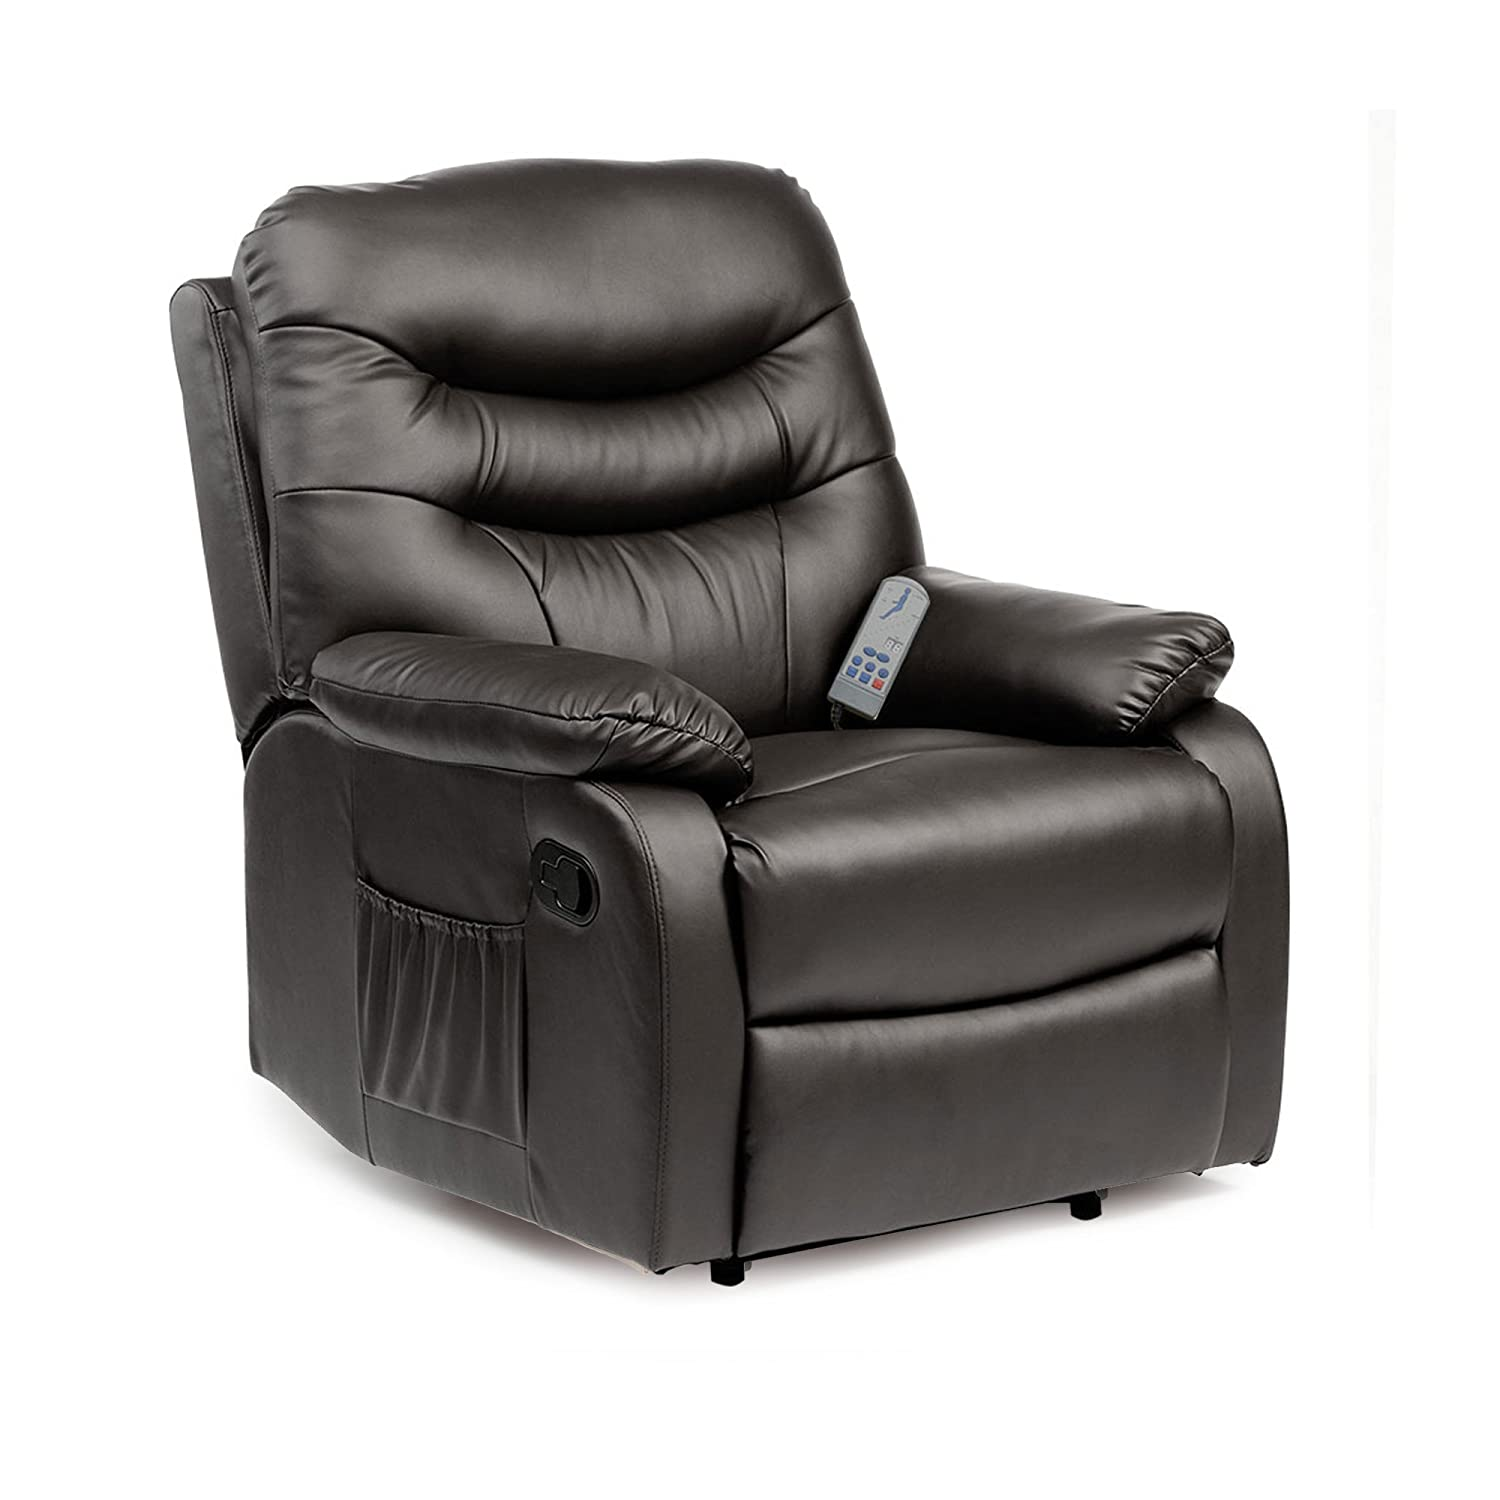 Hebden Massage Manual Reclining Chair (Black) Amazon.co.uk Kitchen u0026 Home  sc 1 st  Amazon UK : leather reclining chairs uk - islam-shia.org